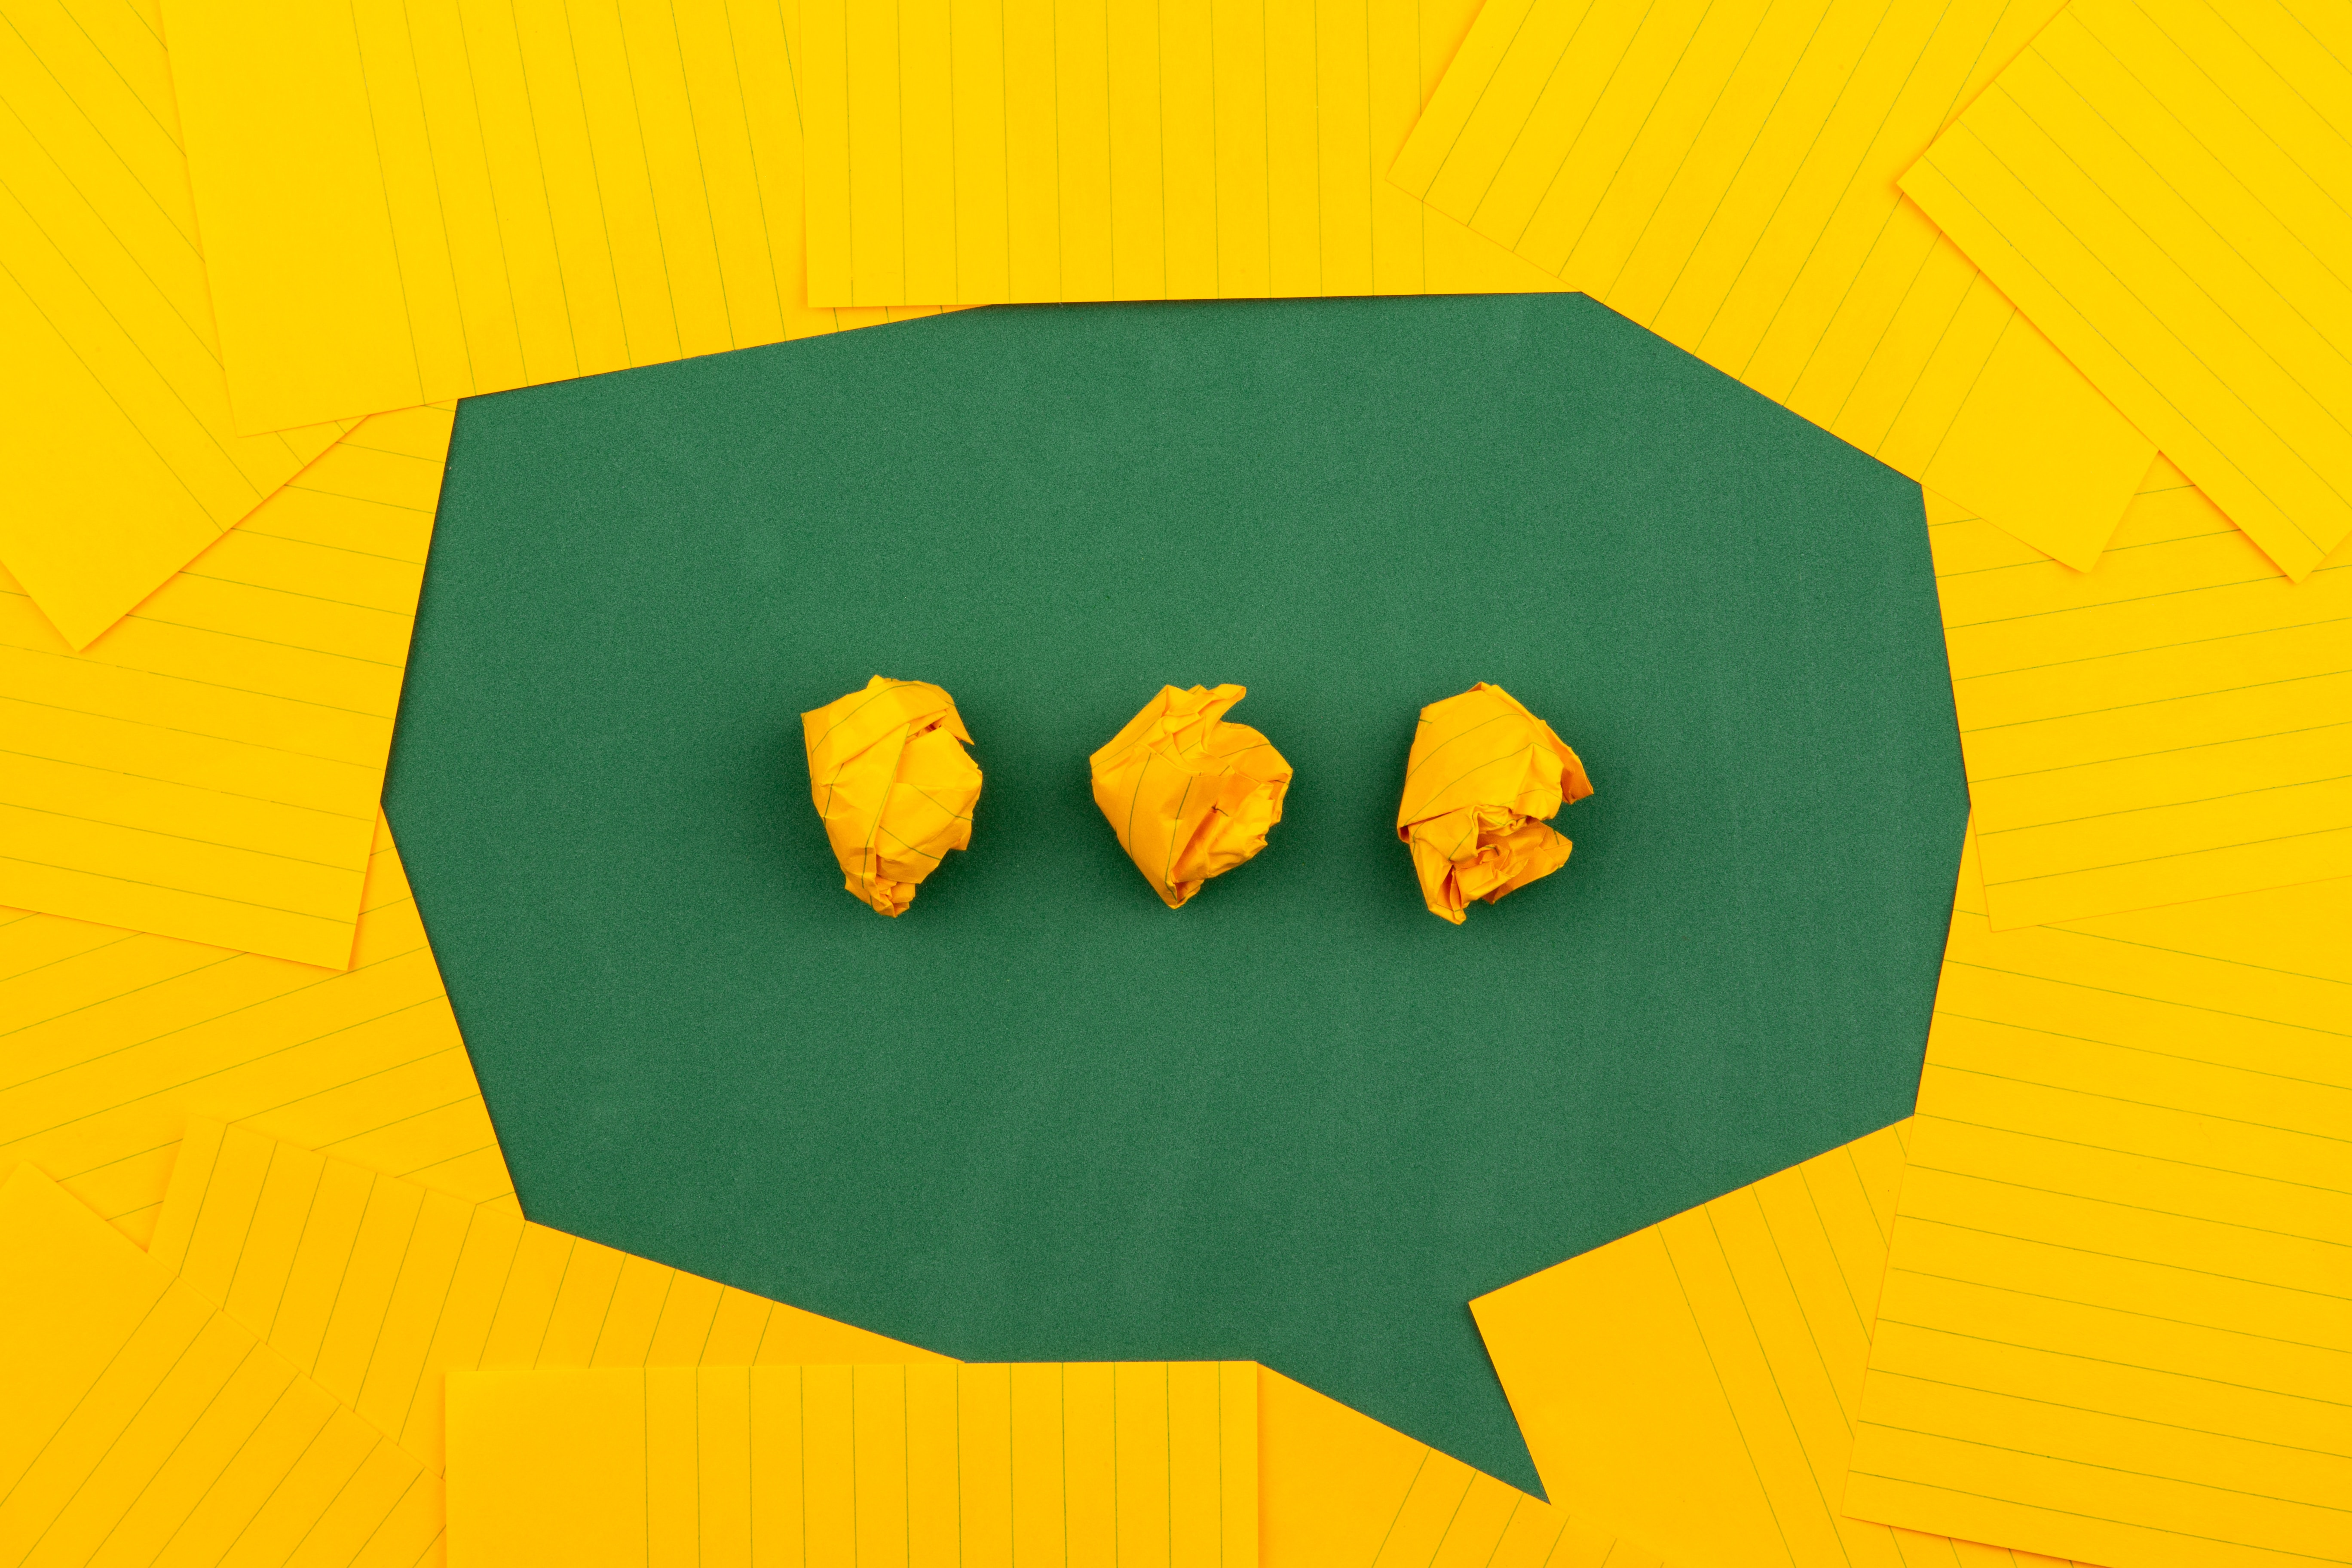 yellow paper surrounding three crumpled pieces of yellow paper in a row outlining a thought bubble